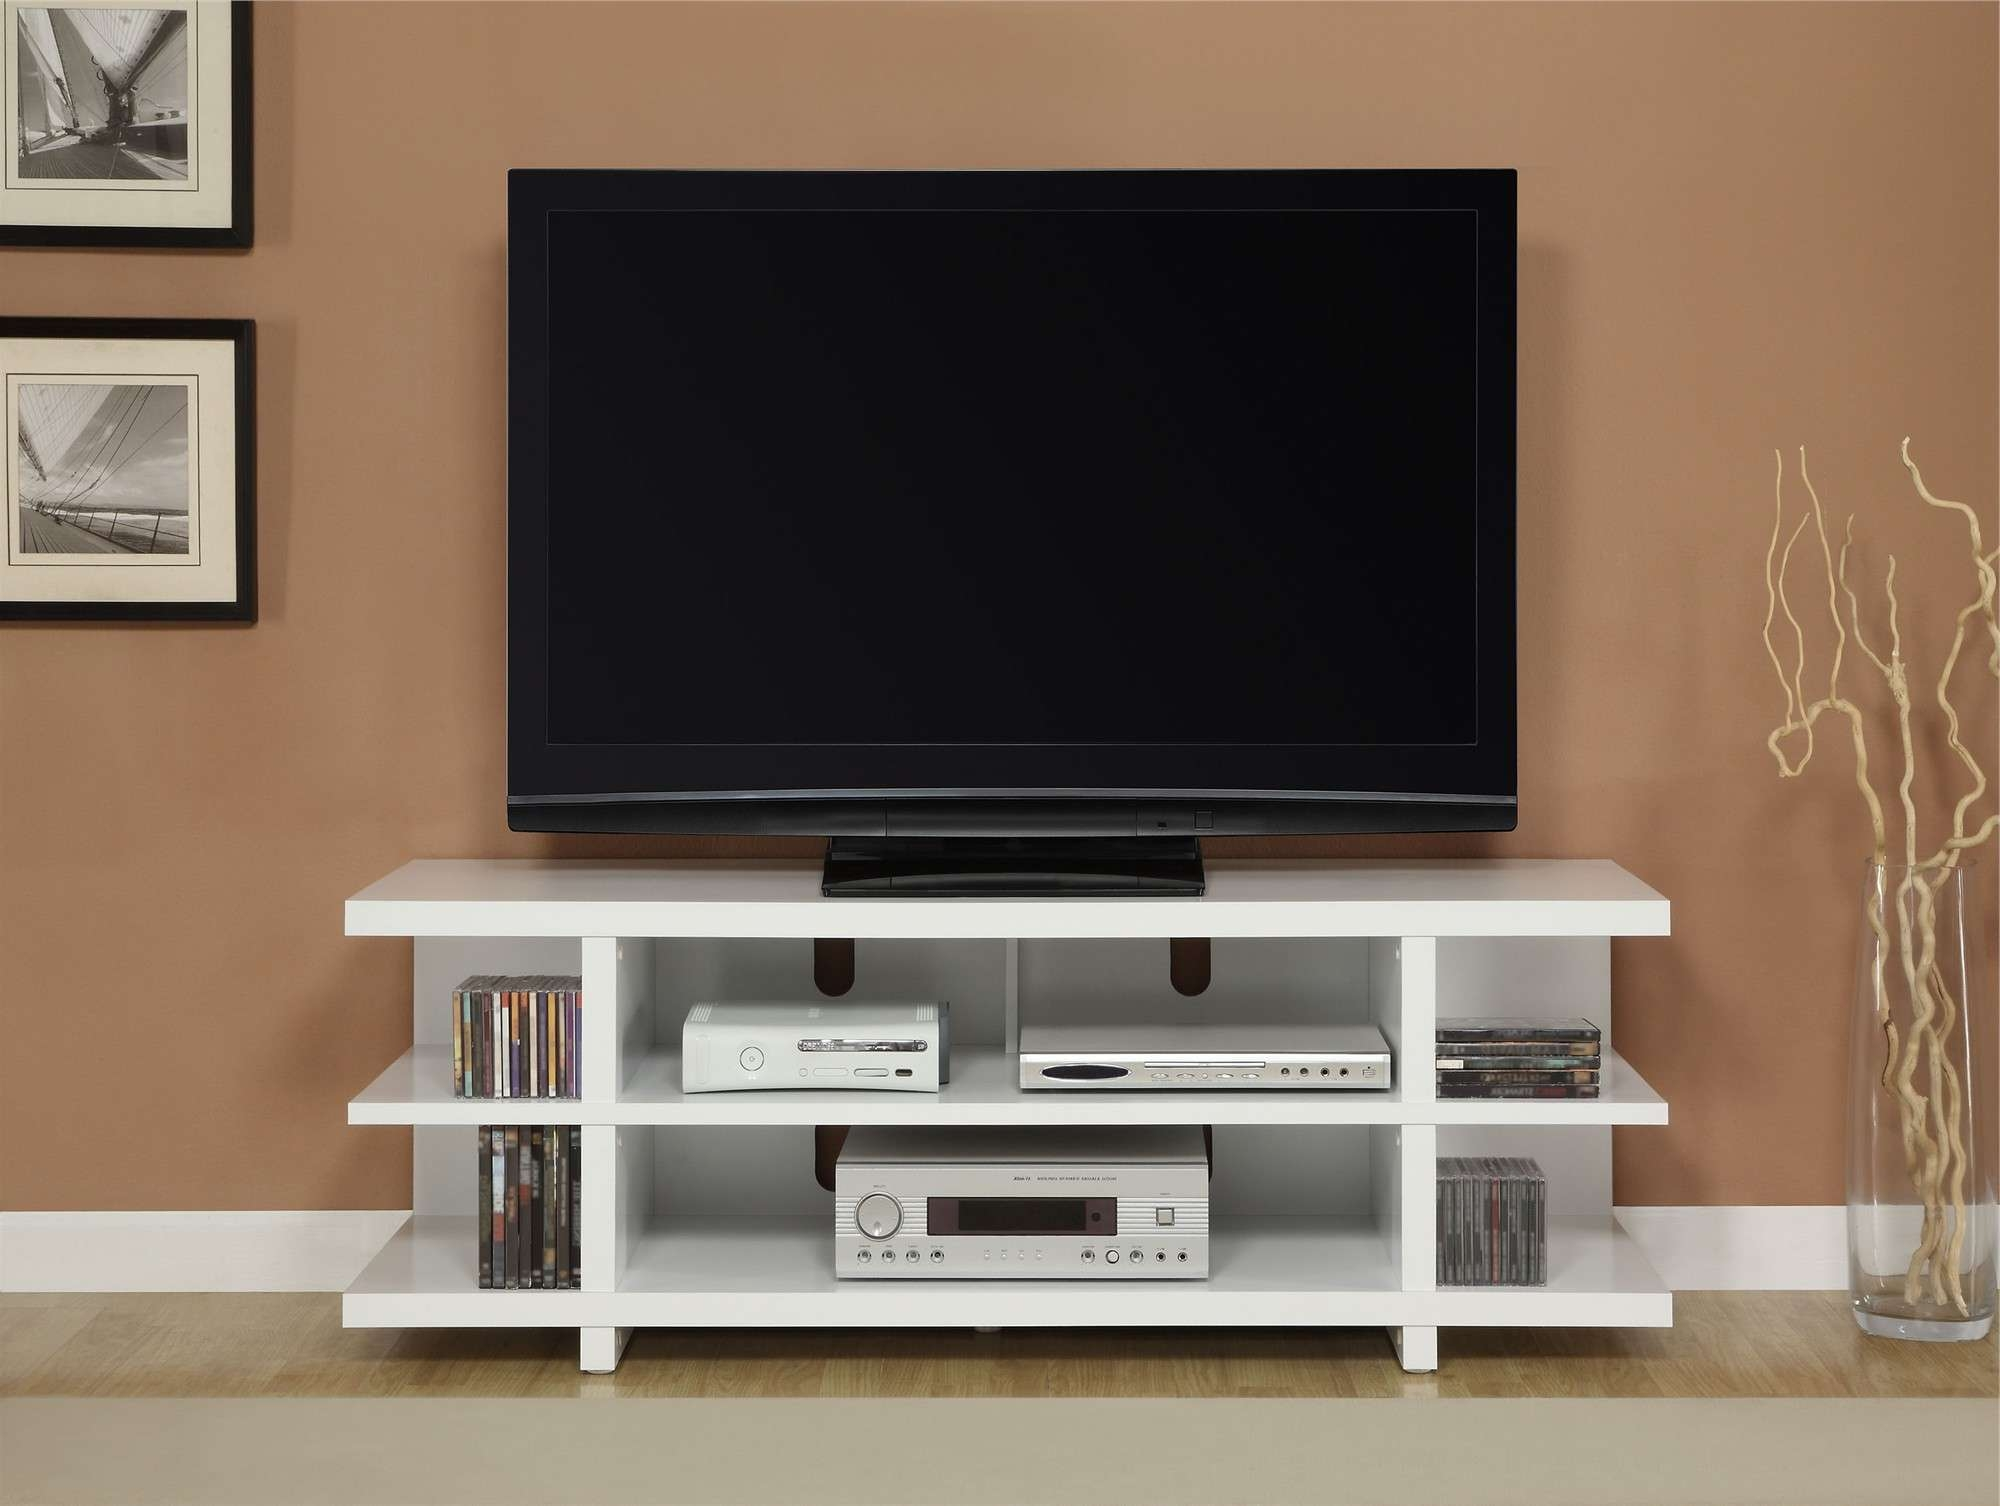 White Painted Wooden Tv Stand With Storage Shelves Of Stylish With Regard  To Contemporary Tv Stands